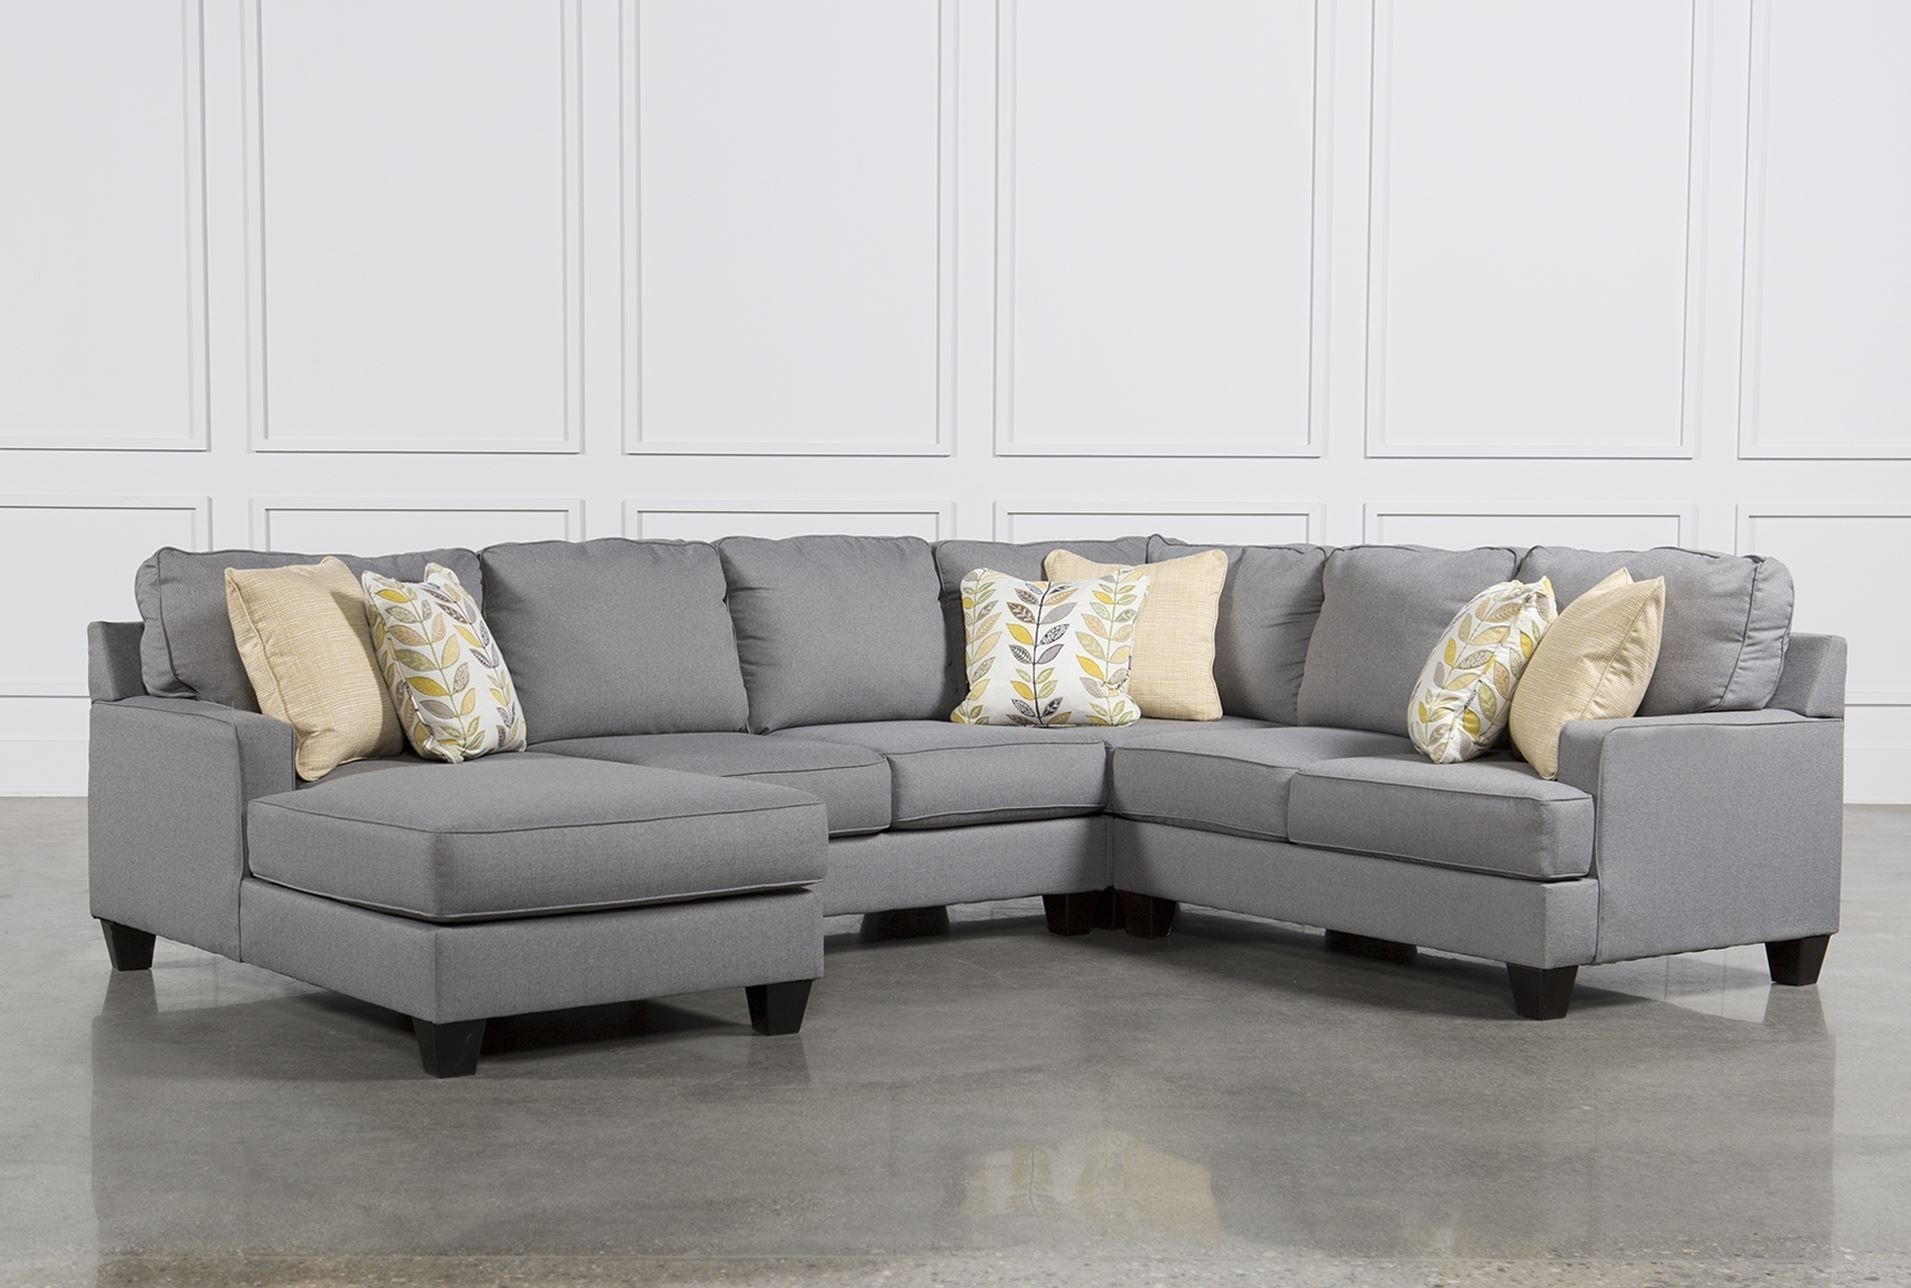 Living Spaces Sectional Couches – Implantologiabogota (View 9 of 25)